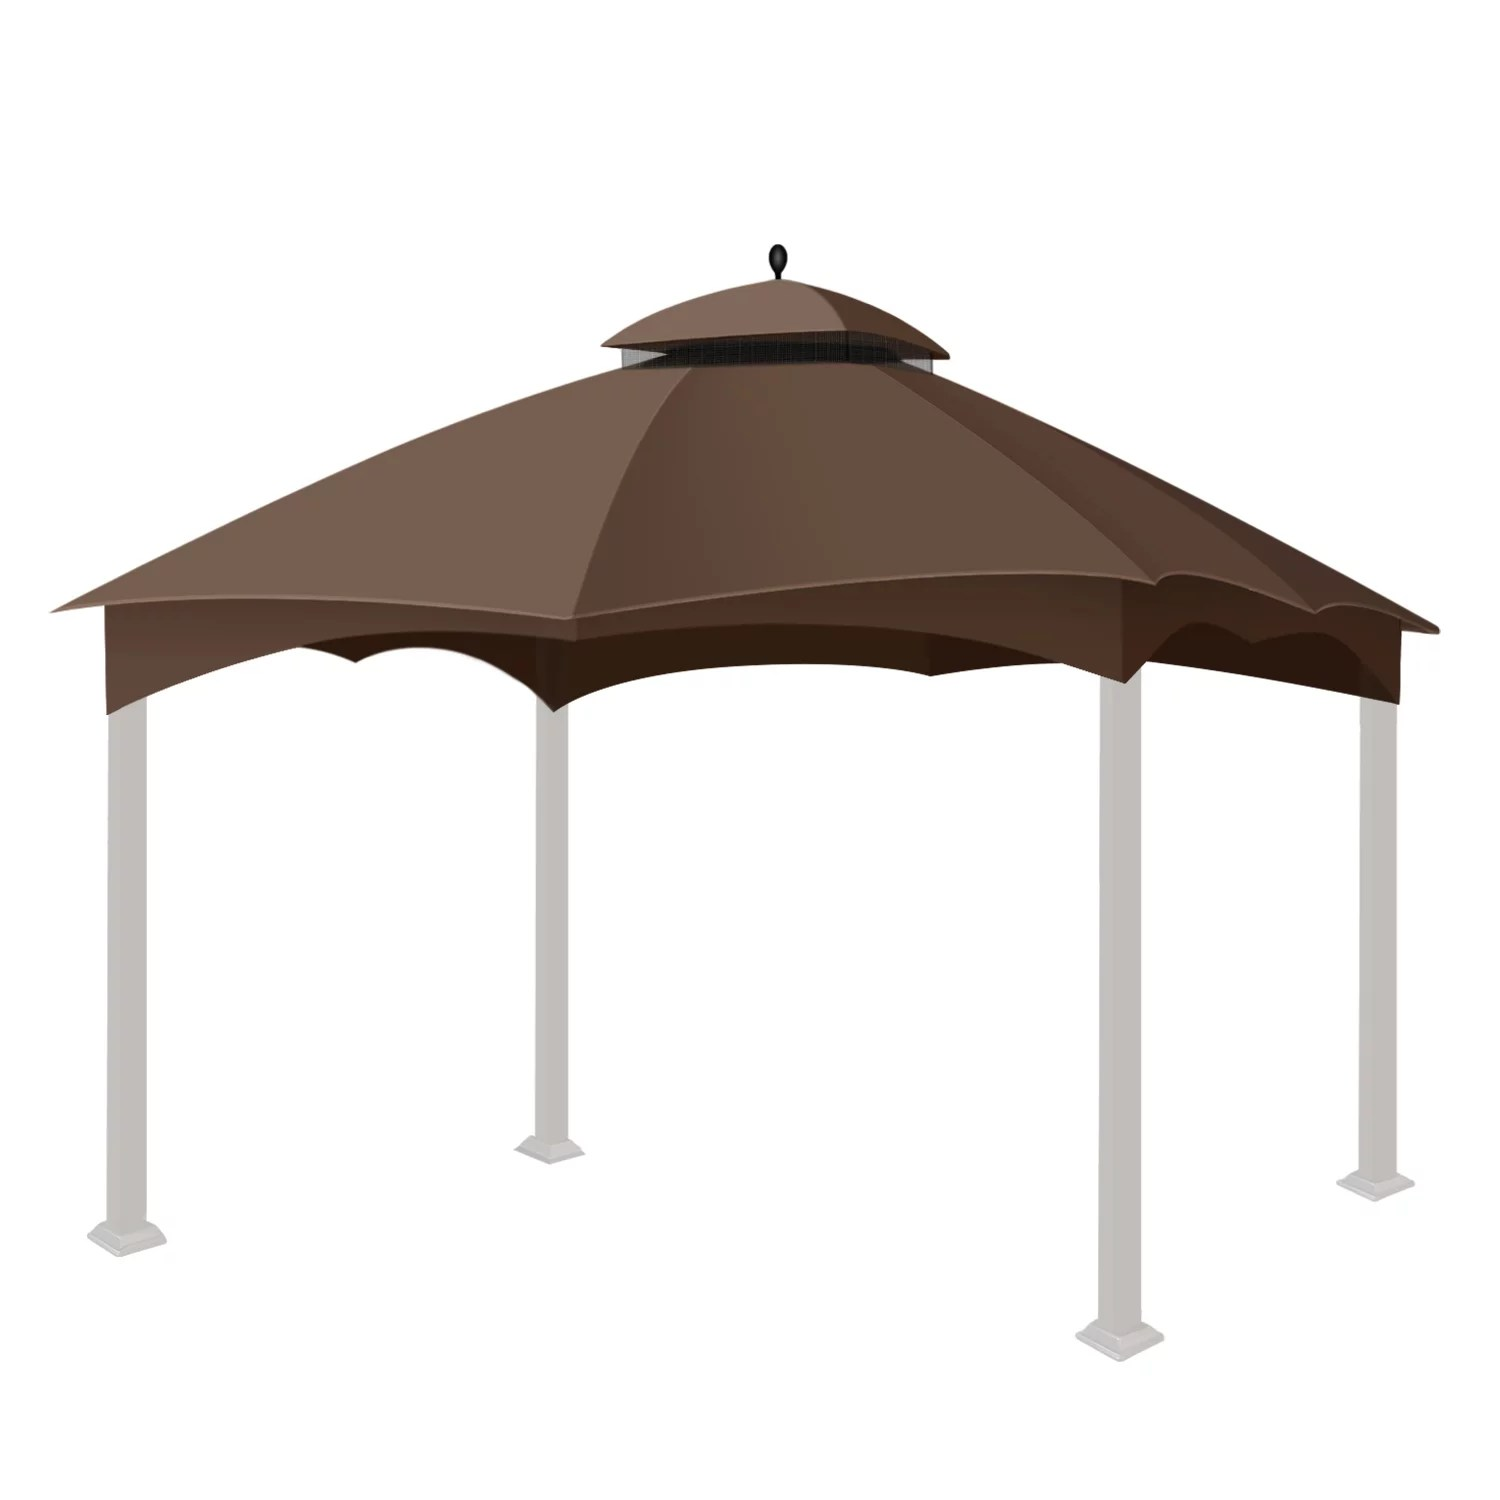 gazebo replacement canopy top tent for lowe s home depot allen roth 10 x 12 feet uv upf 50 dual tier plain edge water resistant cover shade outdoor